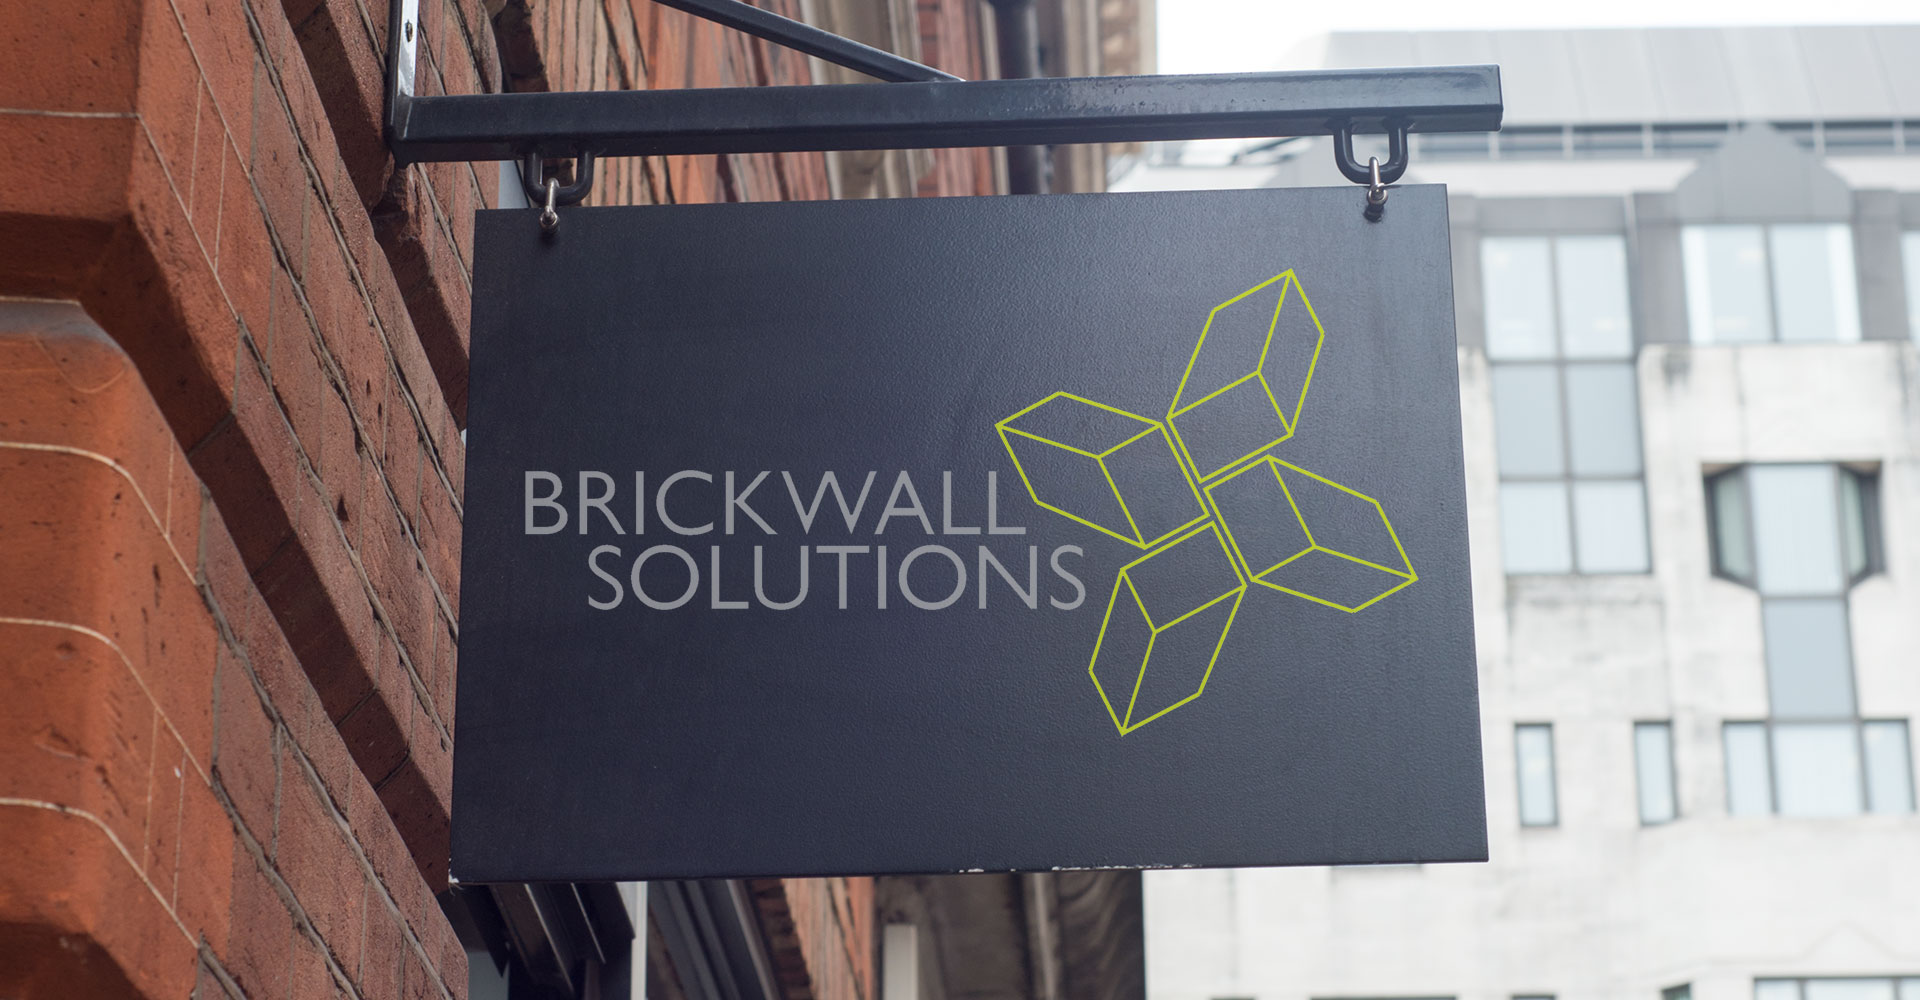 Brickwall Solutions